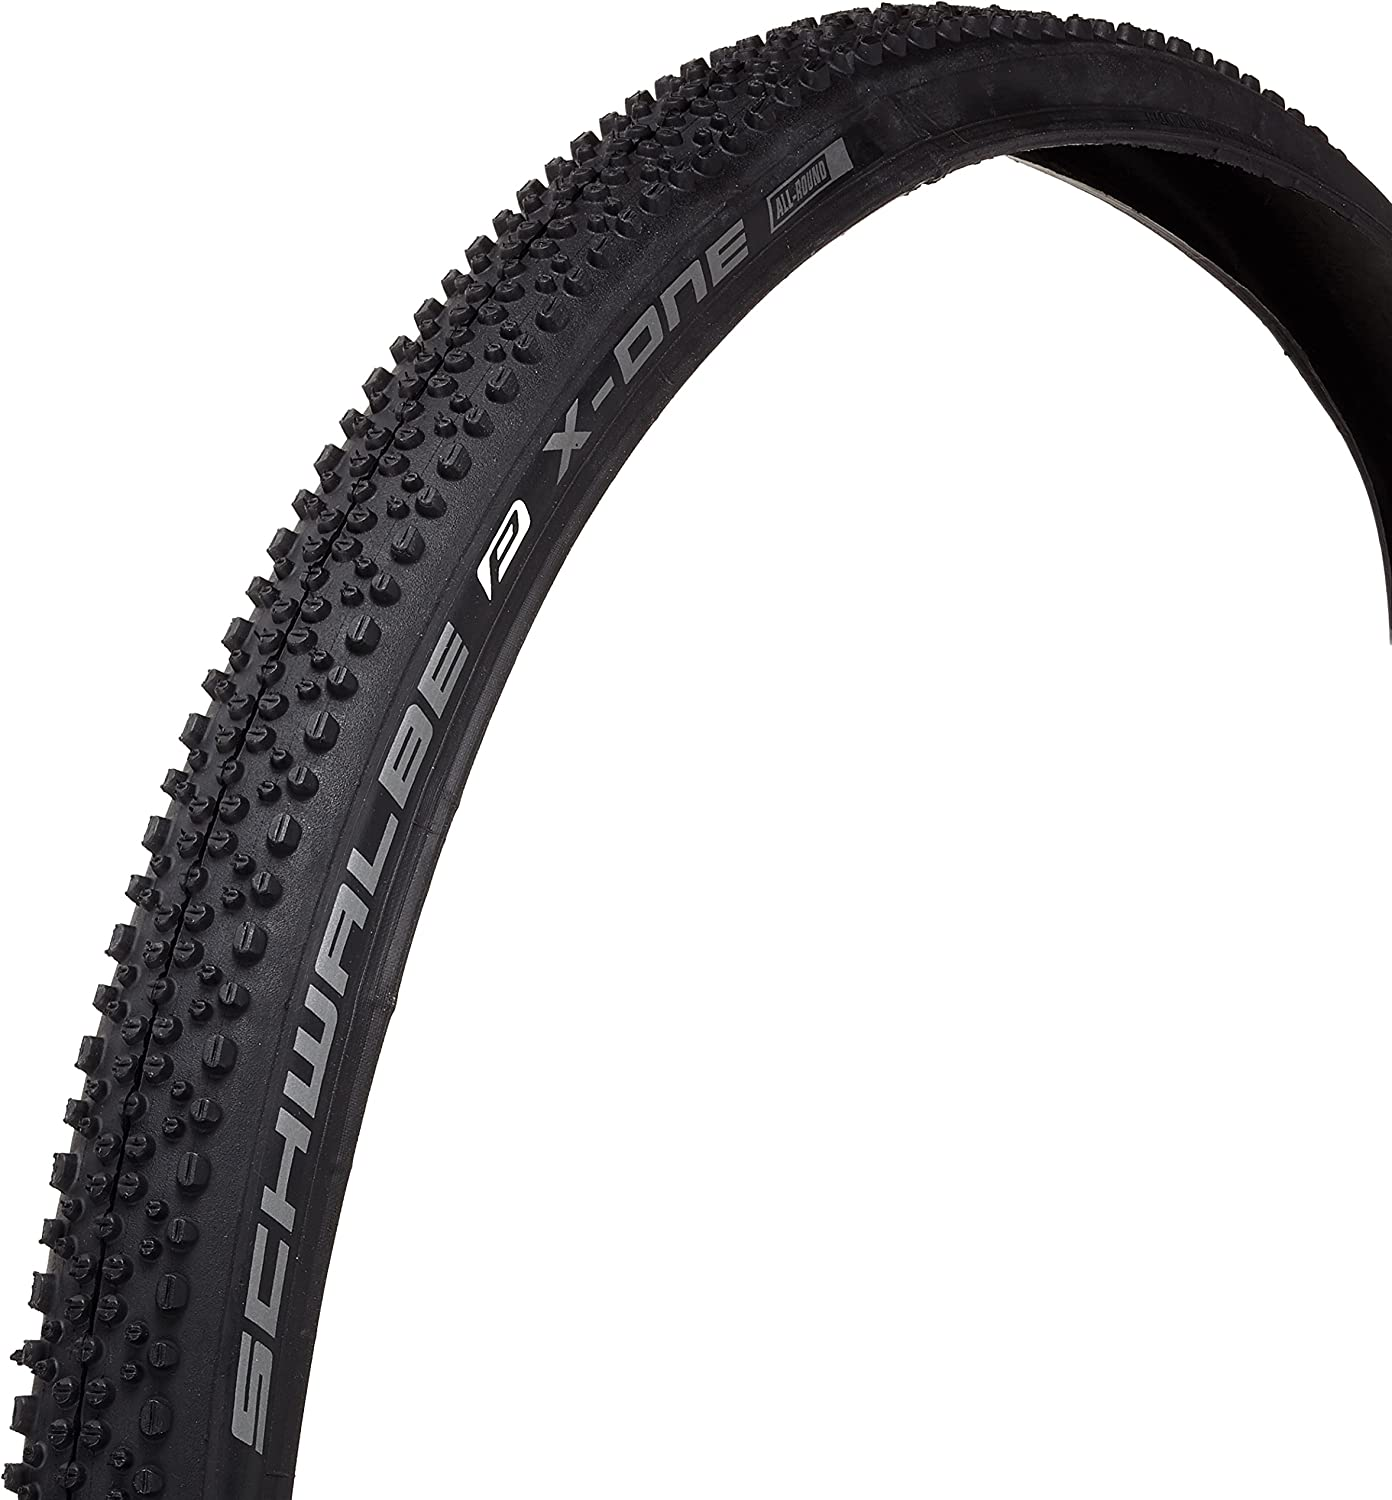 Schwalbe X-One Folding Cyclocross Bike Tire 700x33 Tubeless Easy